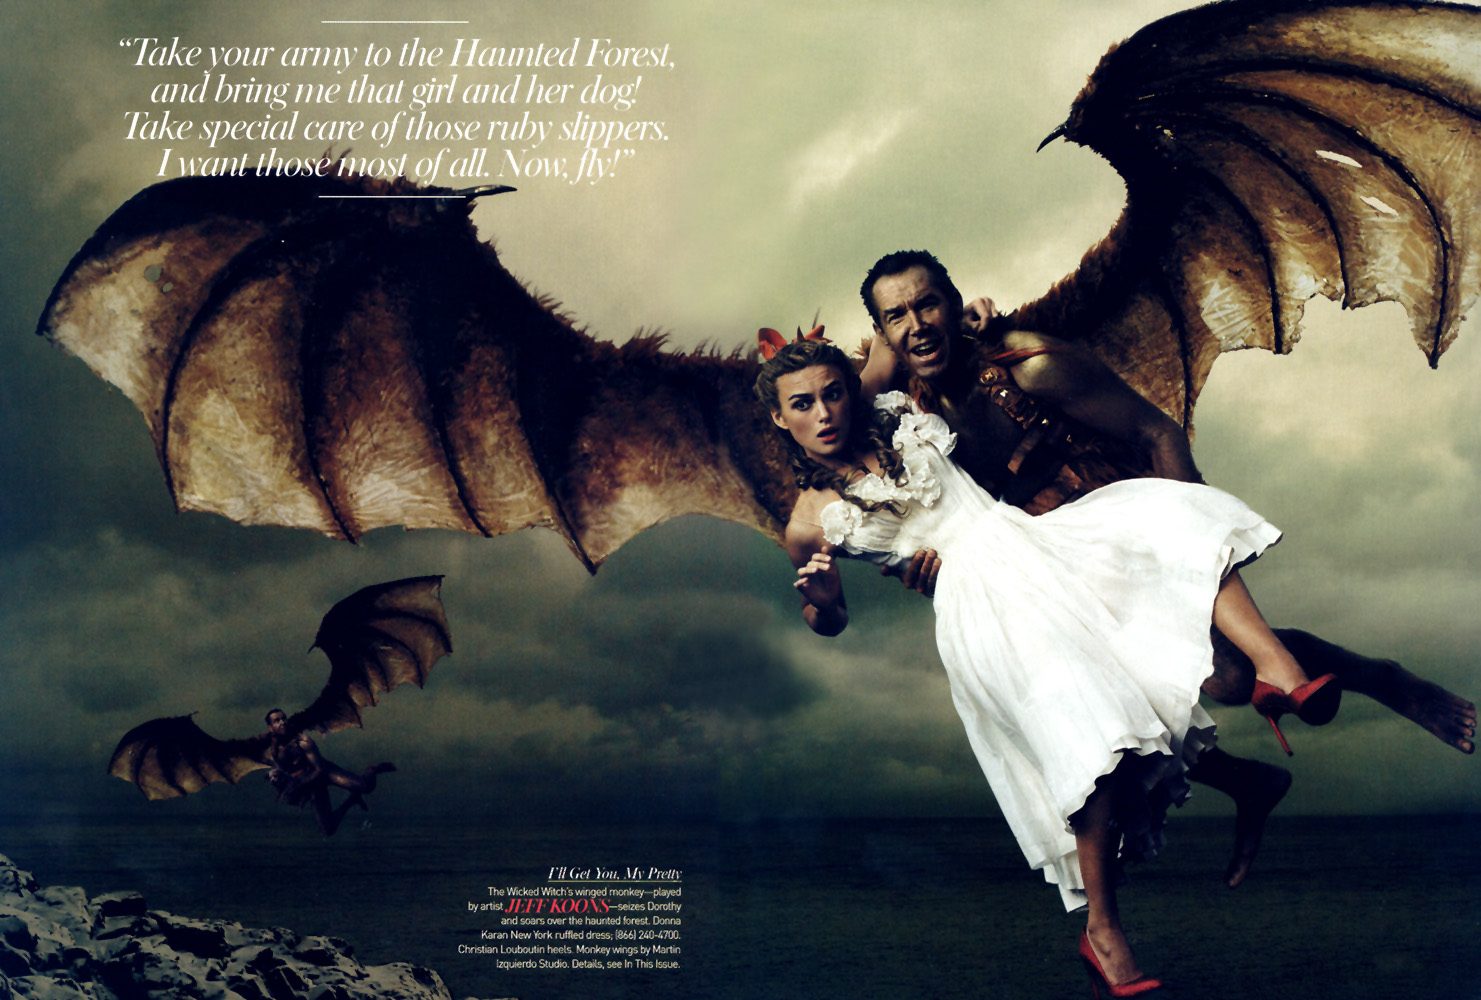 http://2.bp.blogspot.com/-AYE5WPhZ89I/T1PvX9htQjI/AAAAAAAAFKM/4ZqvKItDbtw/s1600/Annie_Leibovitz_Keira_Knightley_US_Vogue_December_2005_The_Wizard_Of_Oz_007.jpg